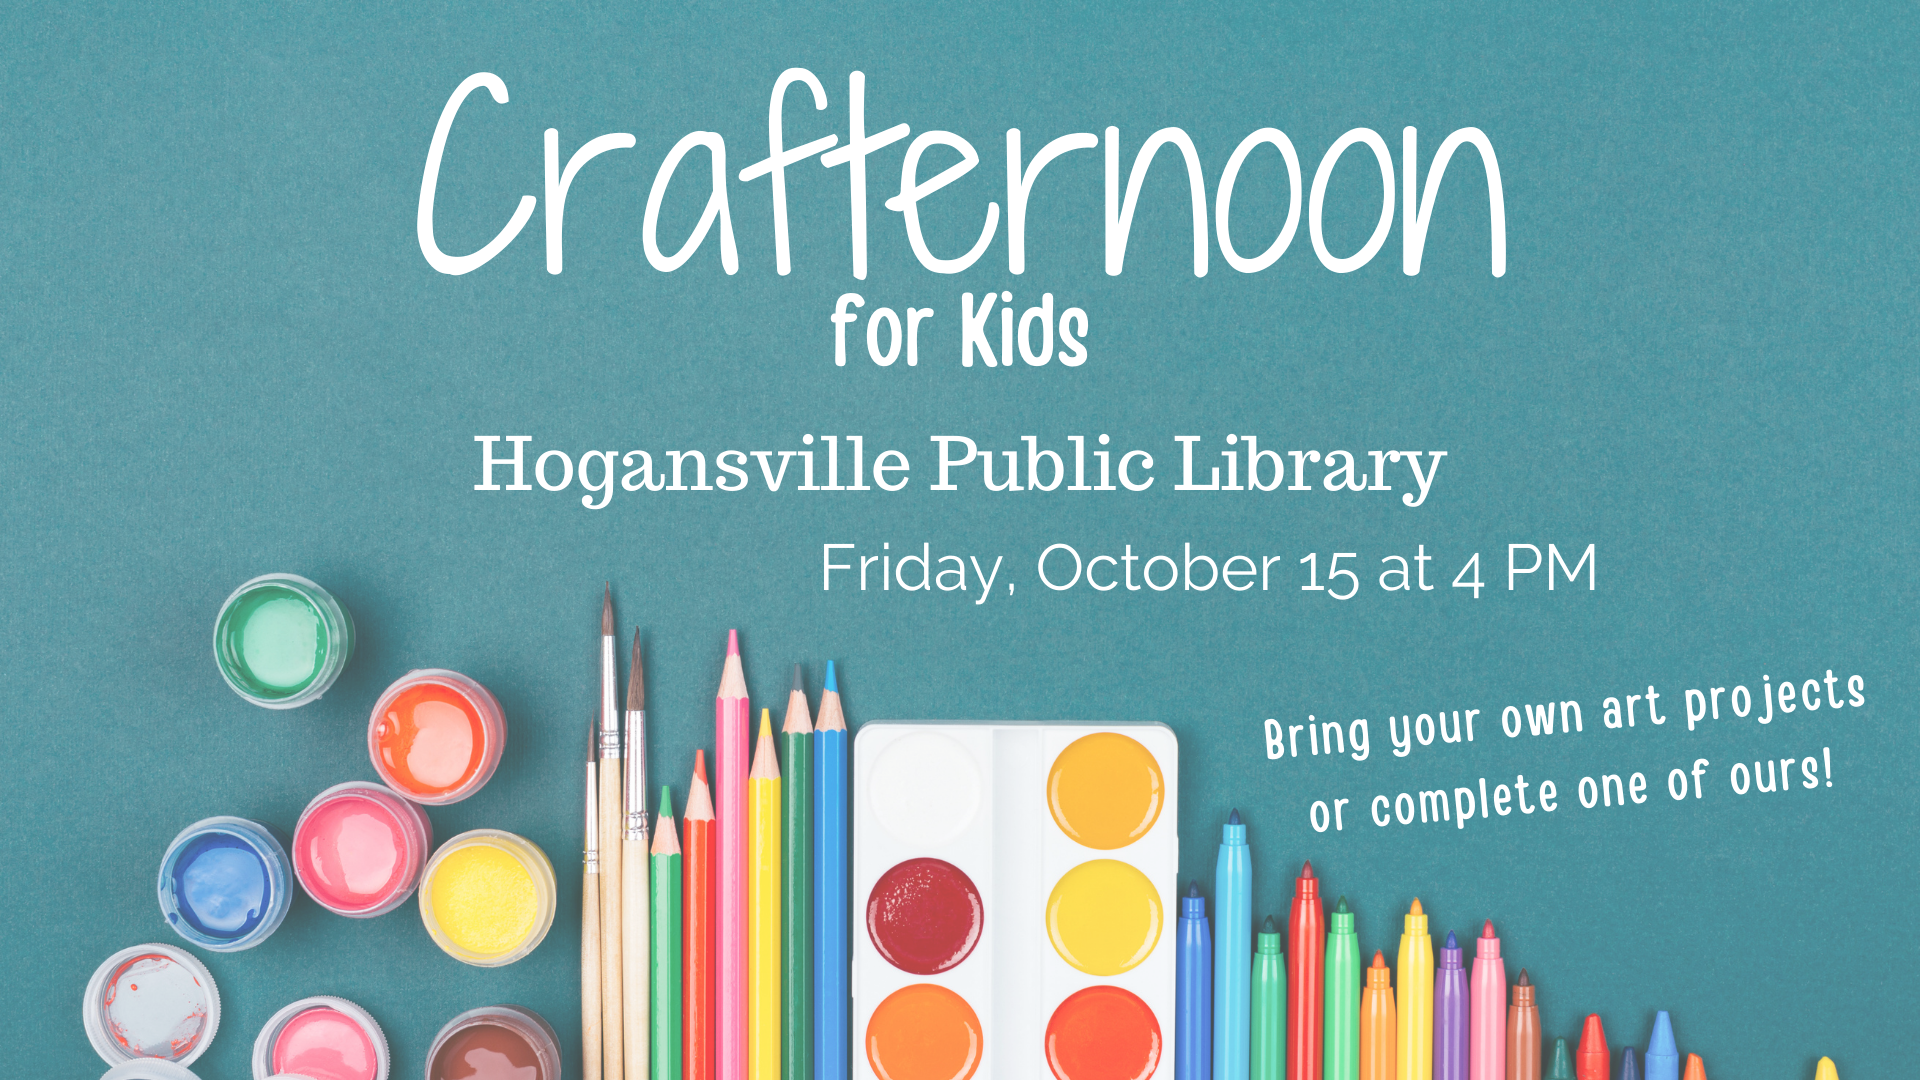 Kids, stop by the Hogansville Library on Friday, October 15 at 4 PM and get your craft on with other local crafters! Participants may bring their personal supplies (drawing, painting, woodwork, etc.), or may use provided supplies. Open to all young community members - no library card/registration required.